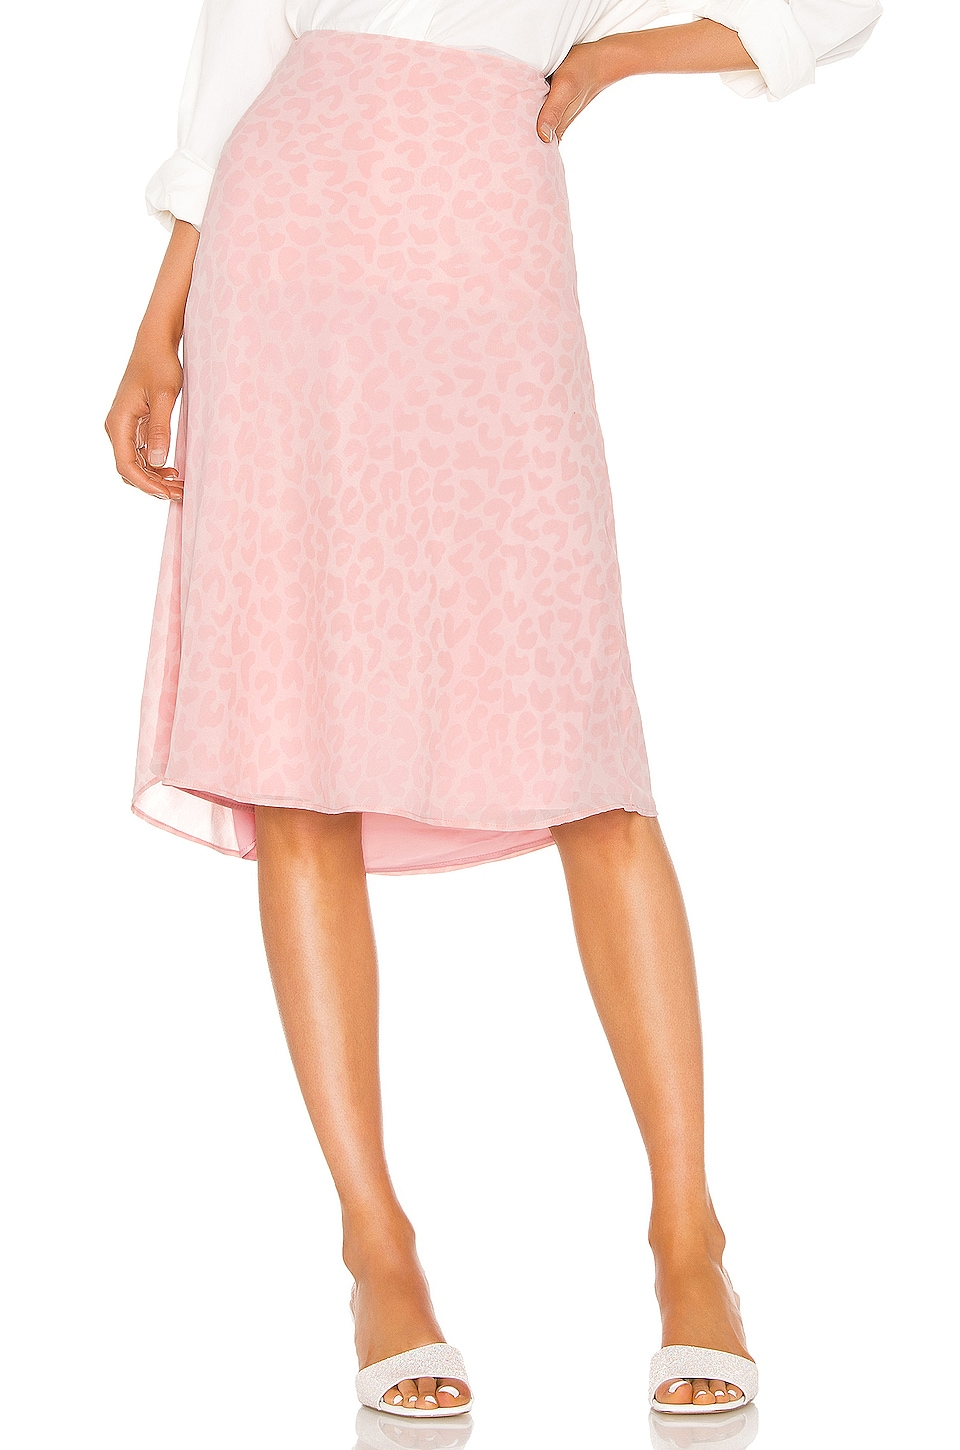 LPA Lucy Skirt in Pink Leopard